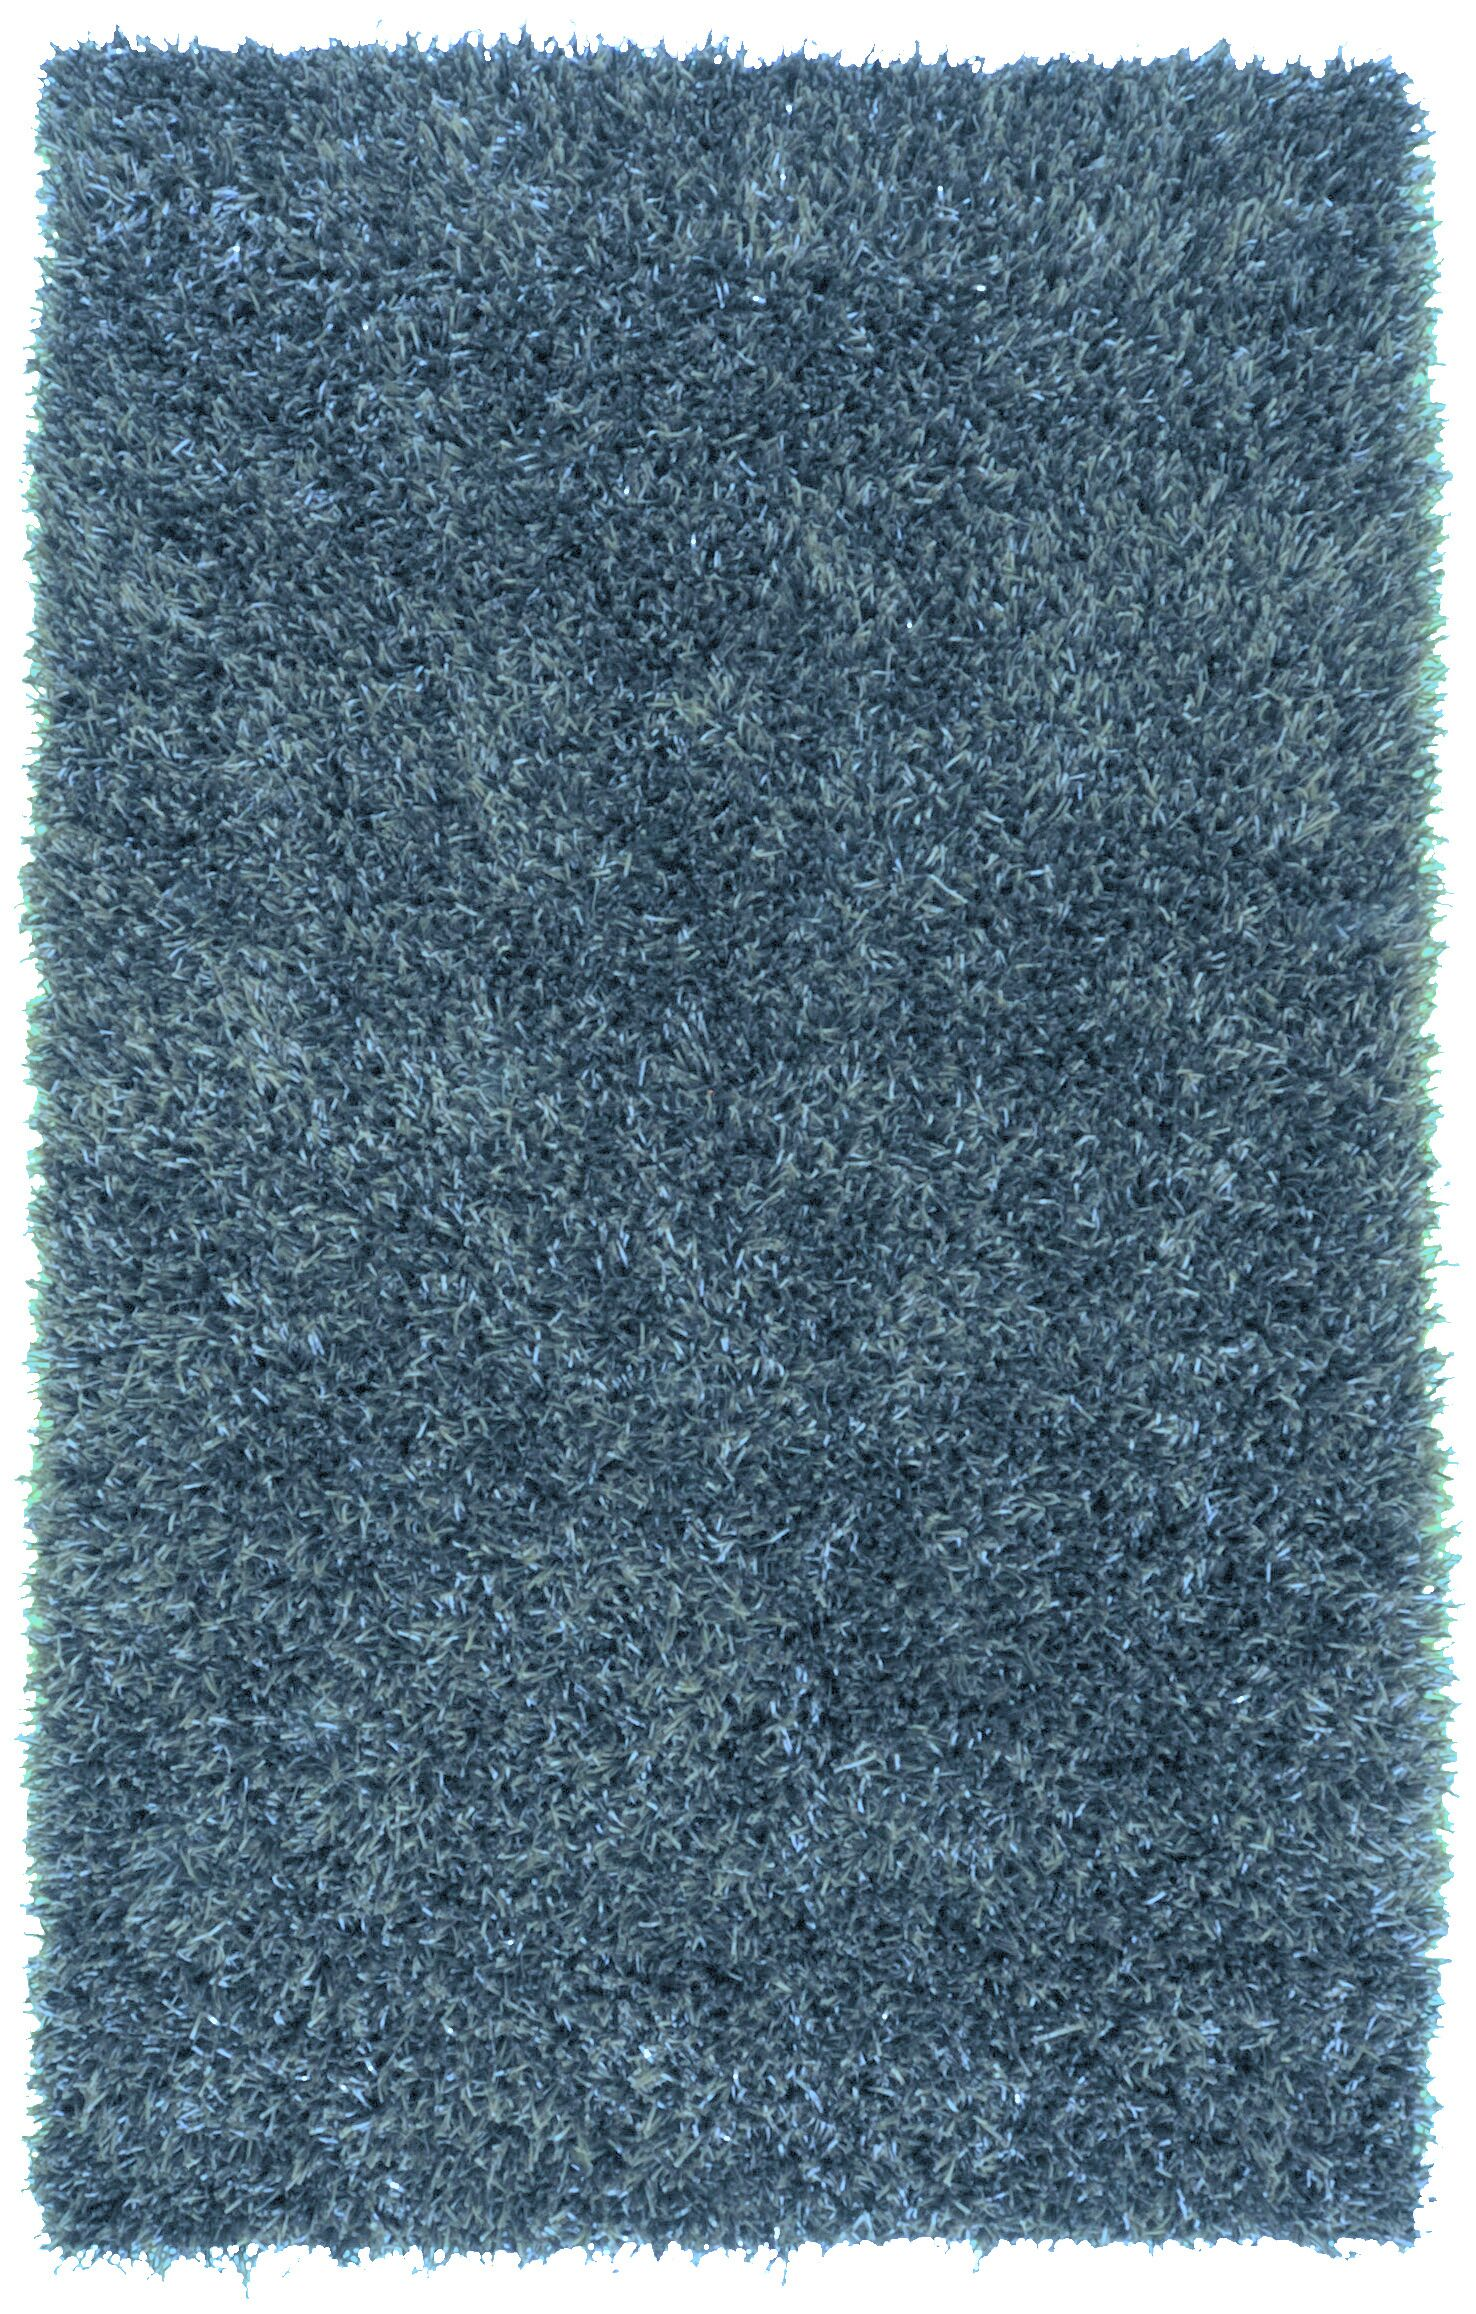 Dodge Hand Woven Blue Area Rug Rug Size: Rectangle 5' x 8'